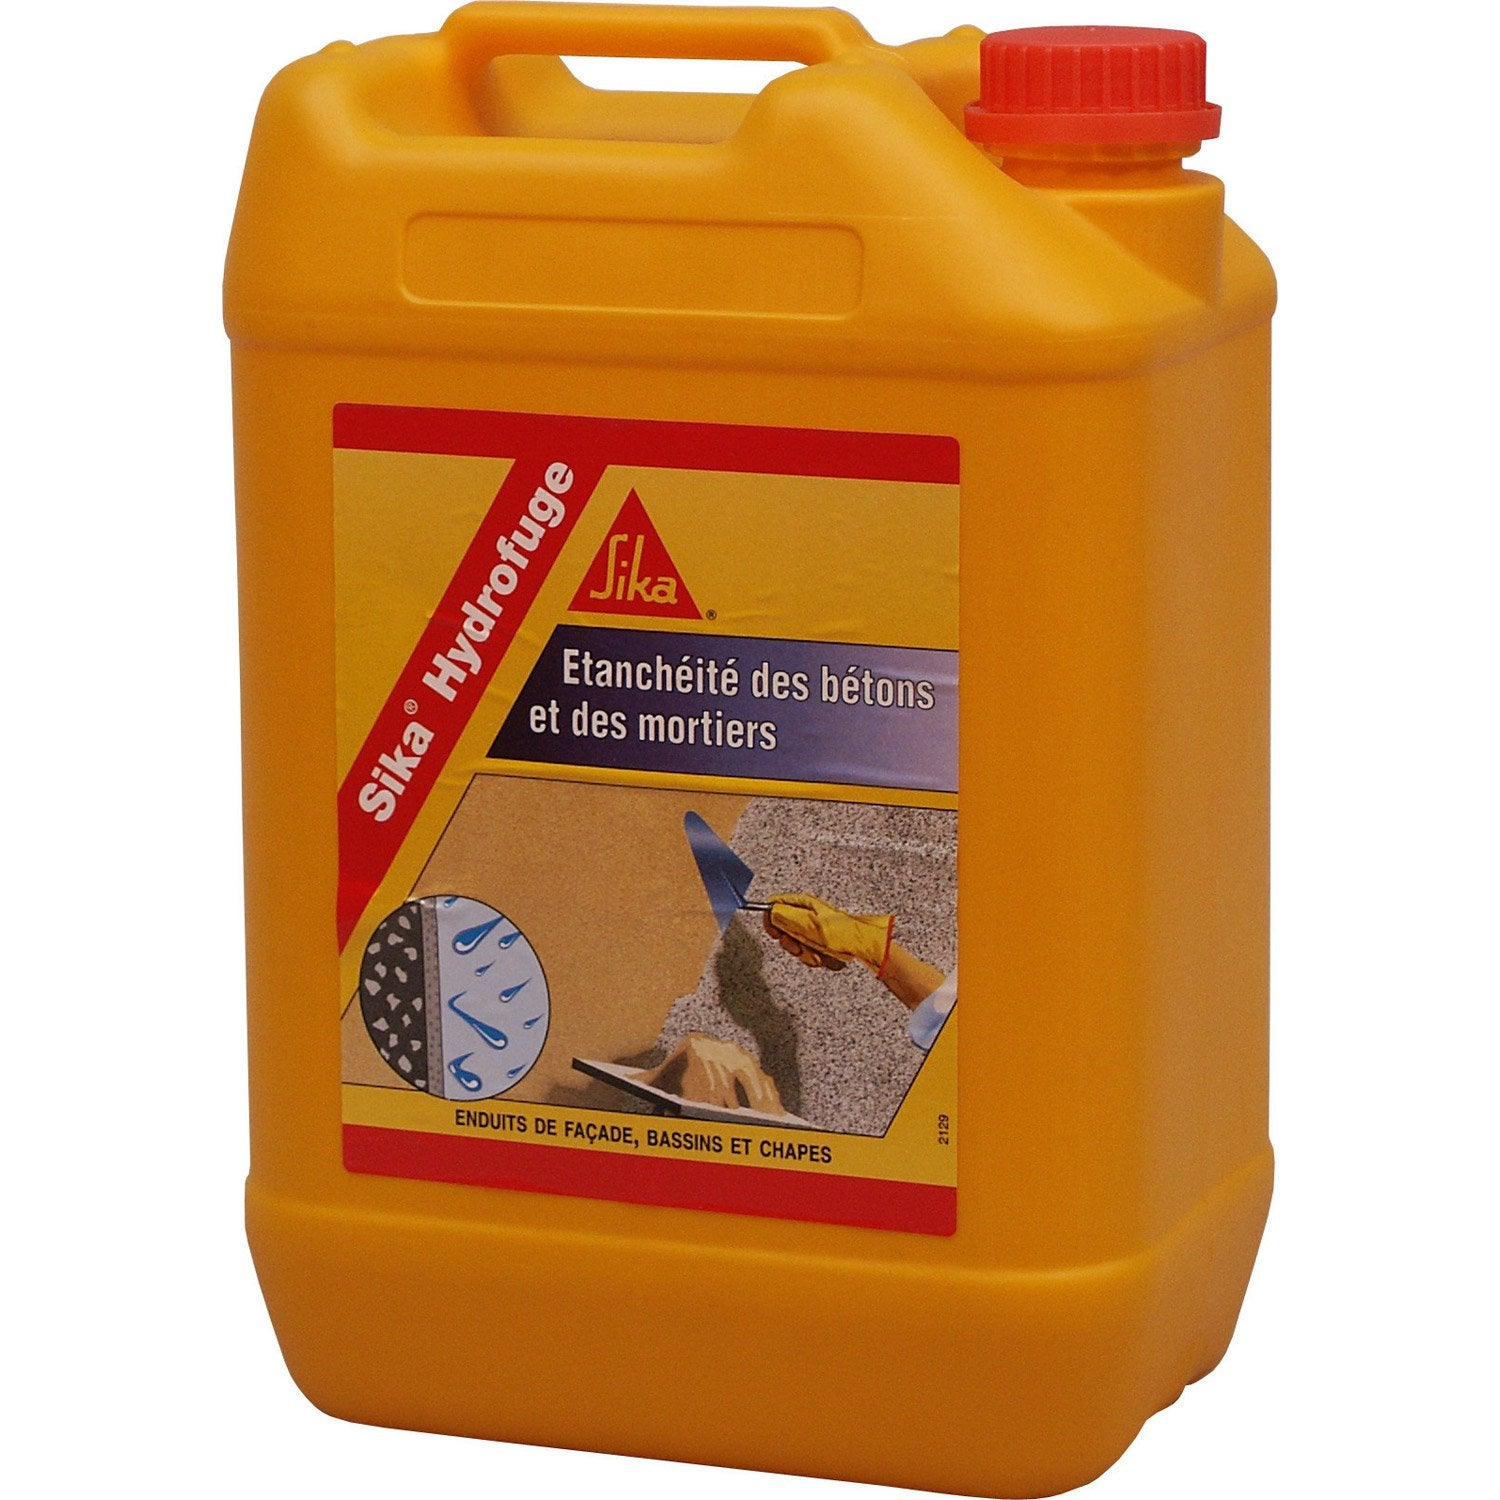 Hydrofuge pour mortier sika 5 l blanc leroy merlin - Prix placo hydrofuge leroy merlin ...